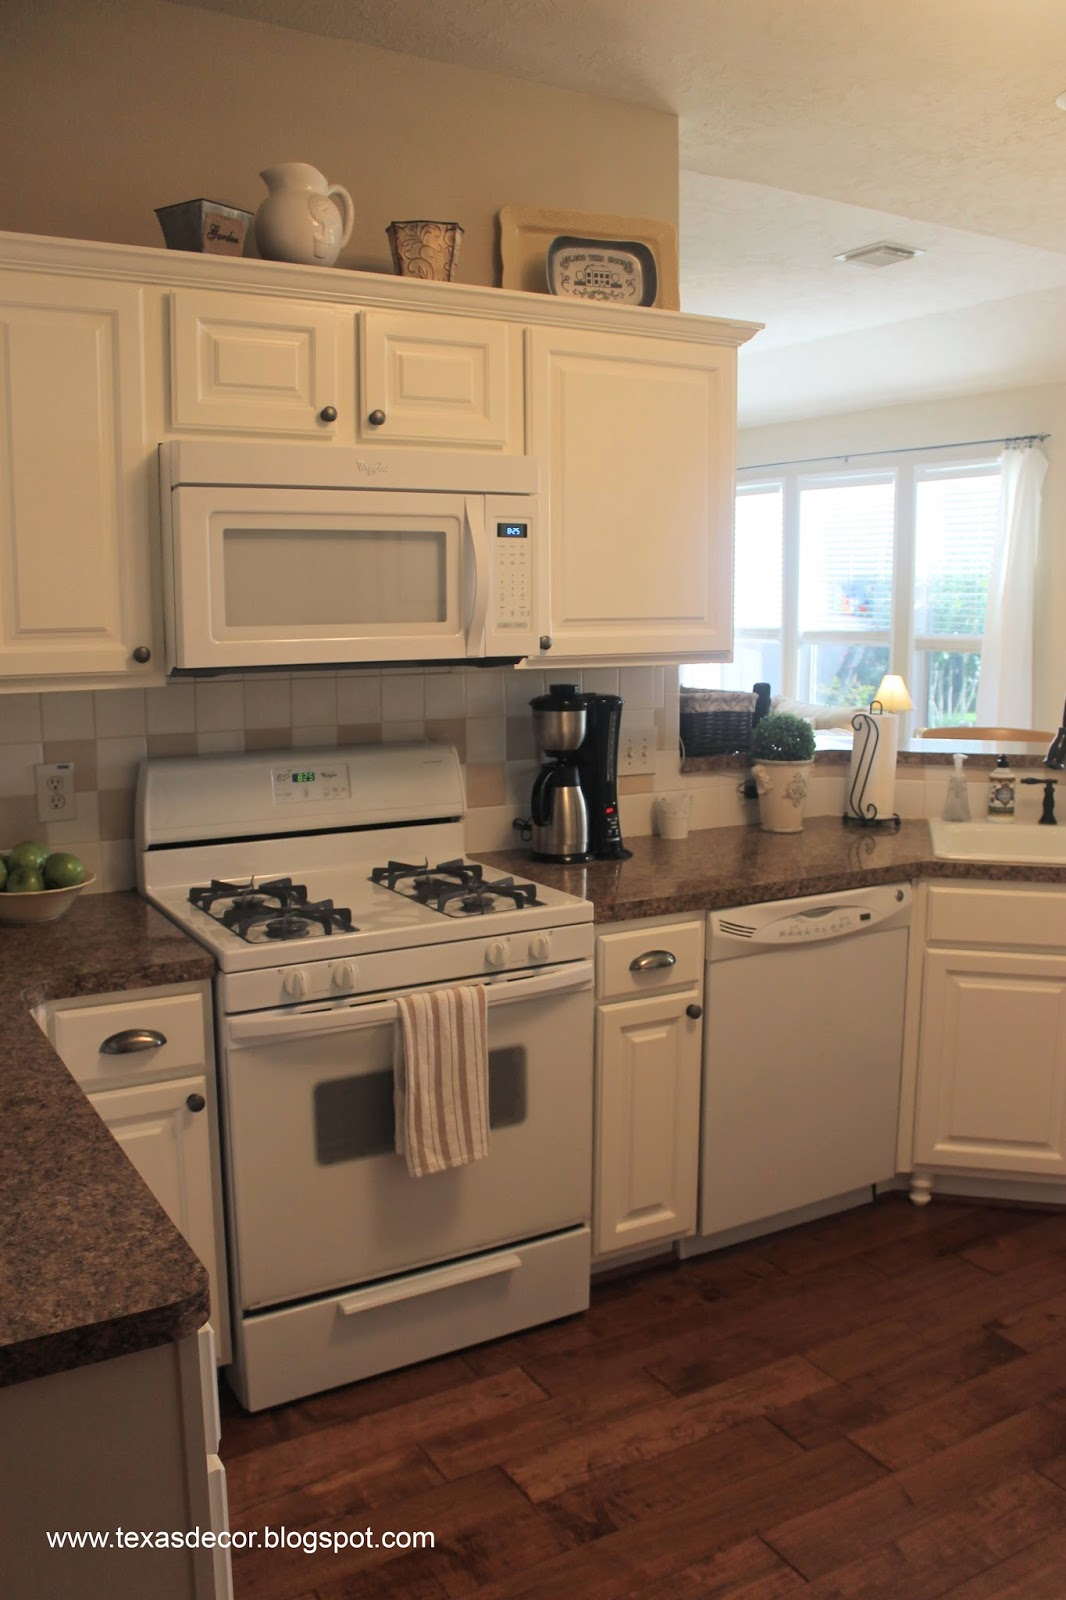 Paint Color That Goes With White Appliances